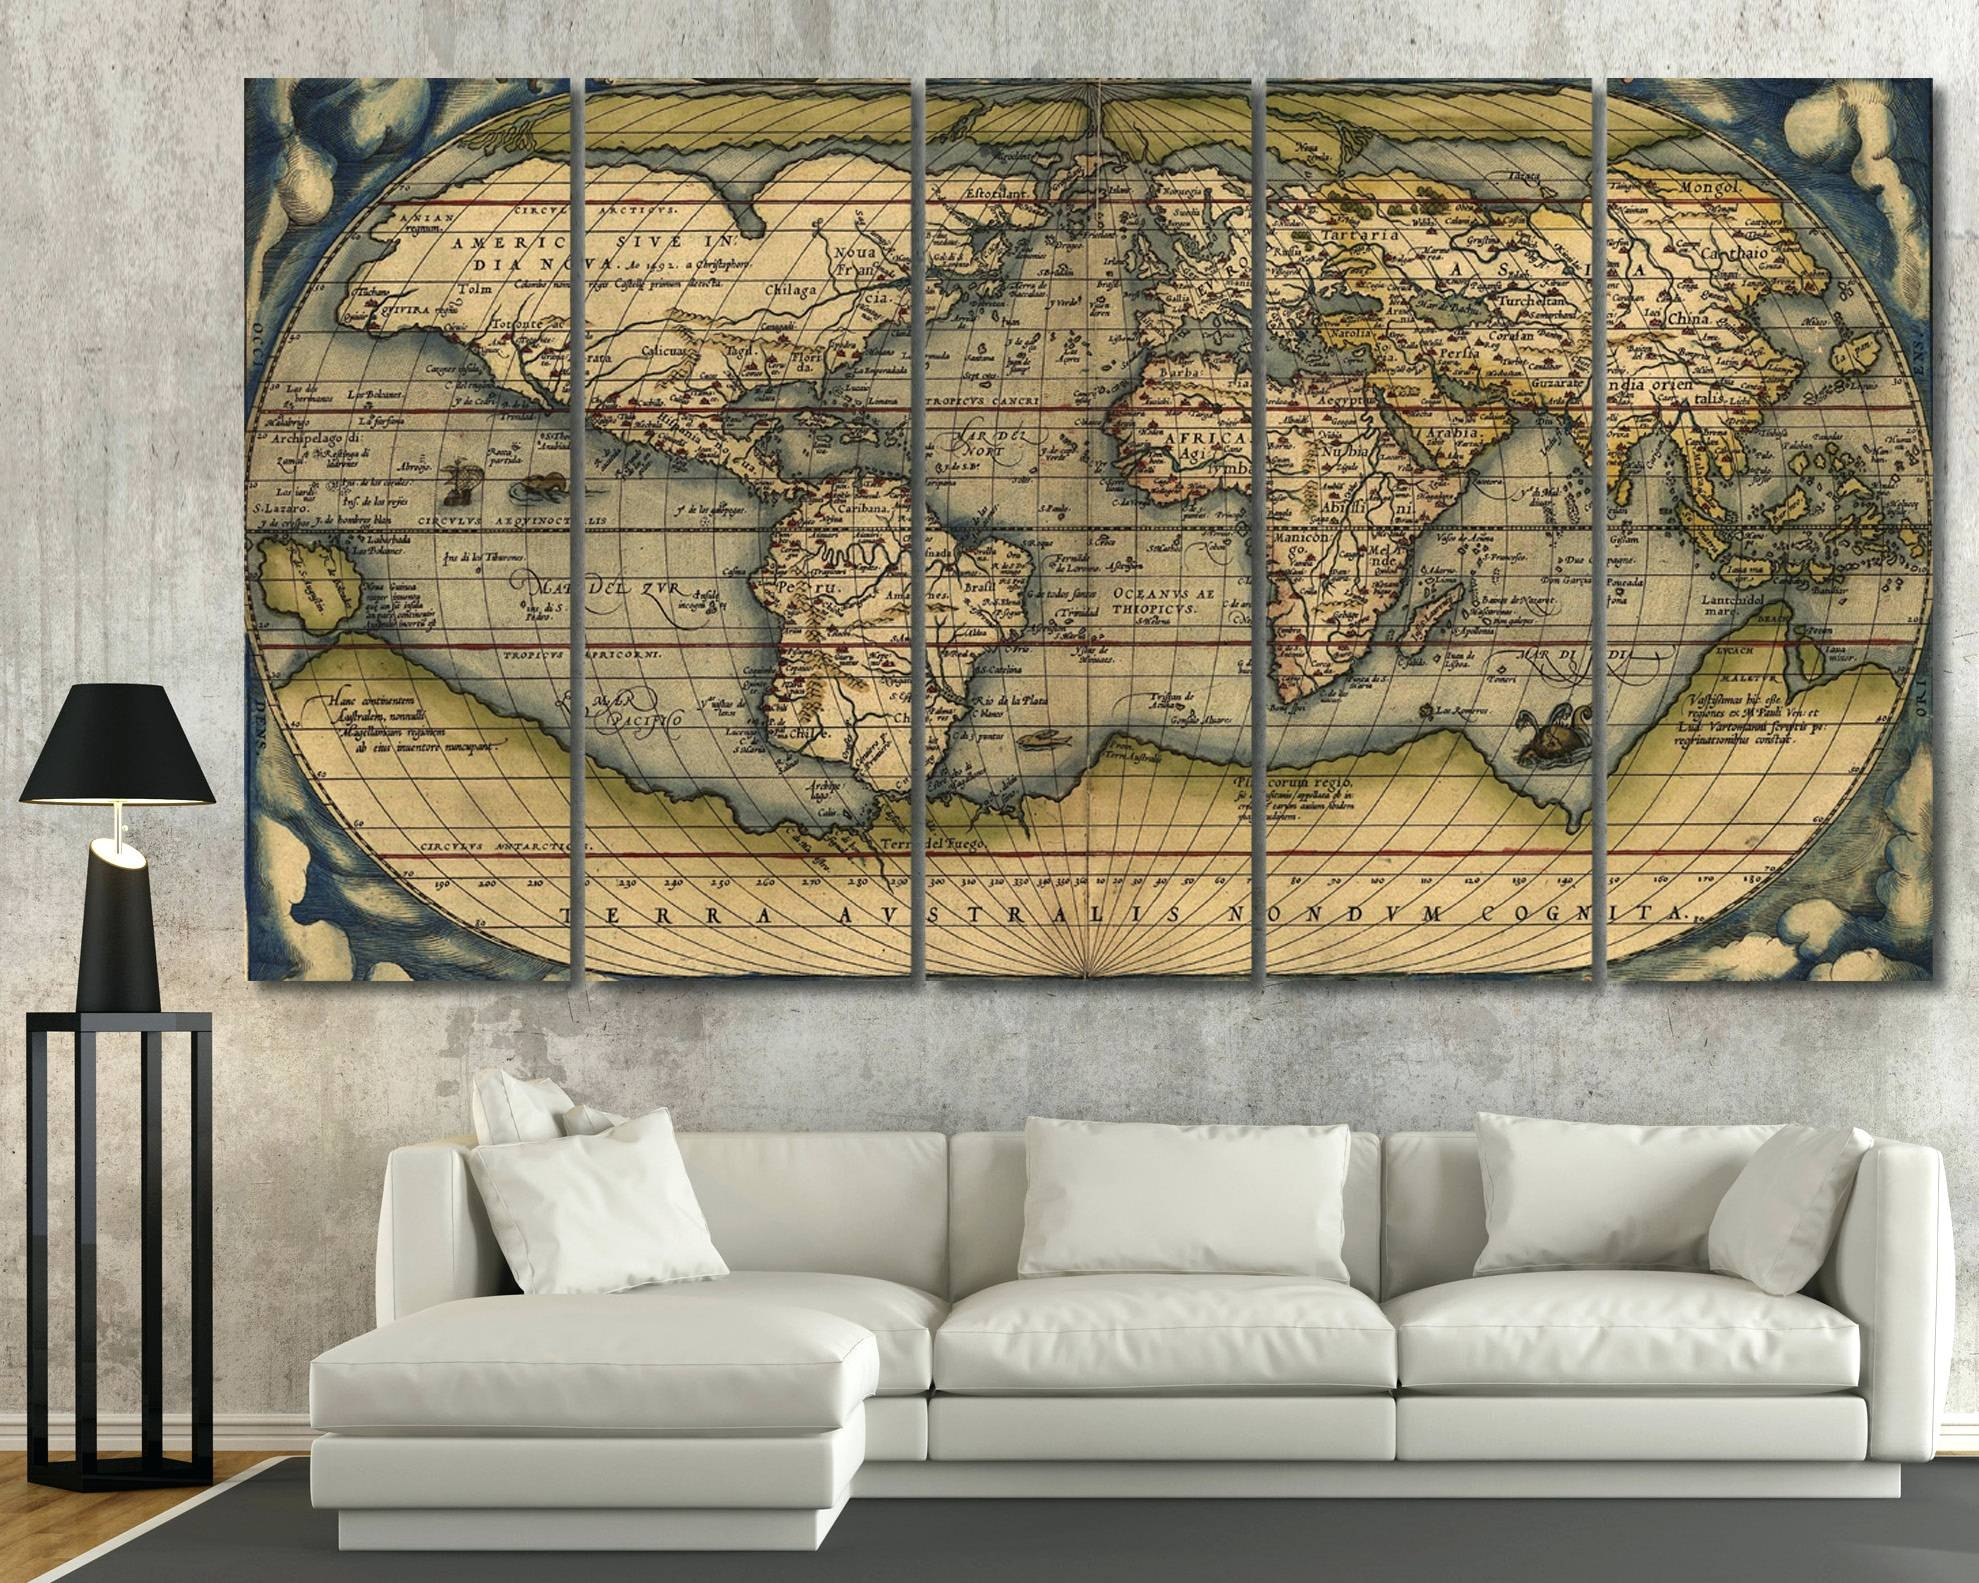 Wall Arts ~ Map Wall Art Etsy Wood Us And Canada Map Wall Art Inside 2018 Africa Map Wall Art (View 8 of 20)